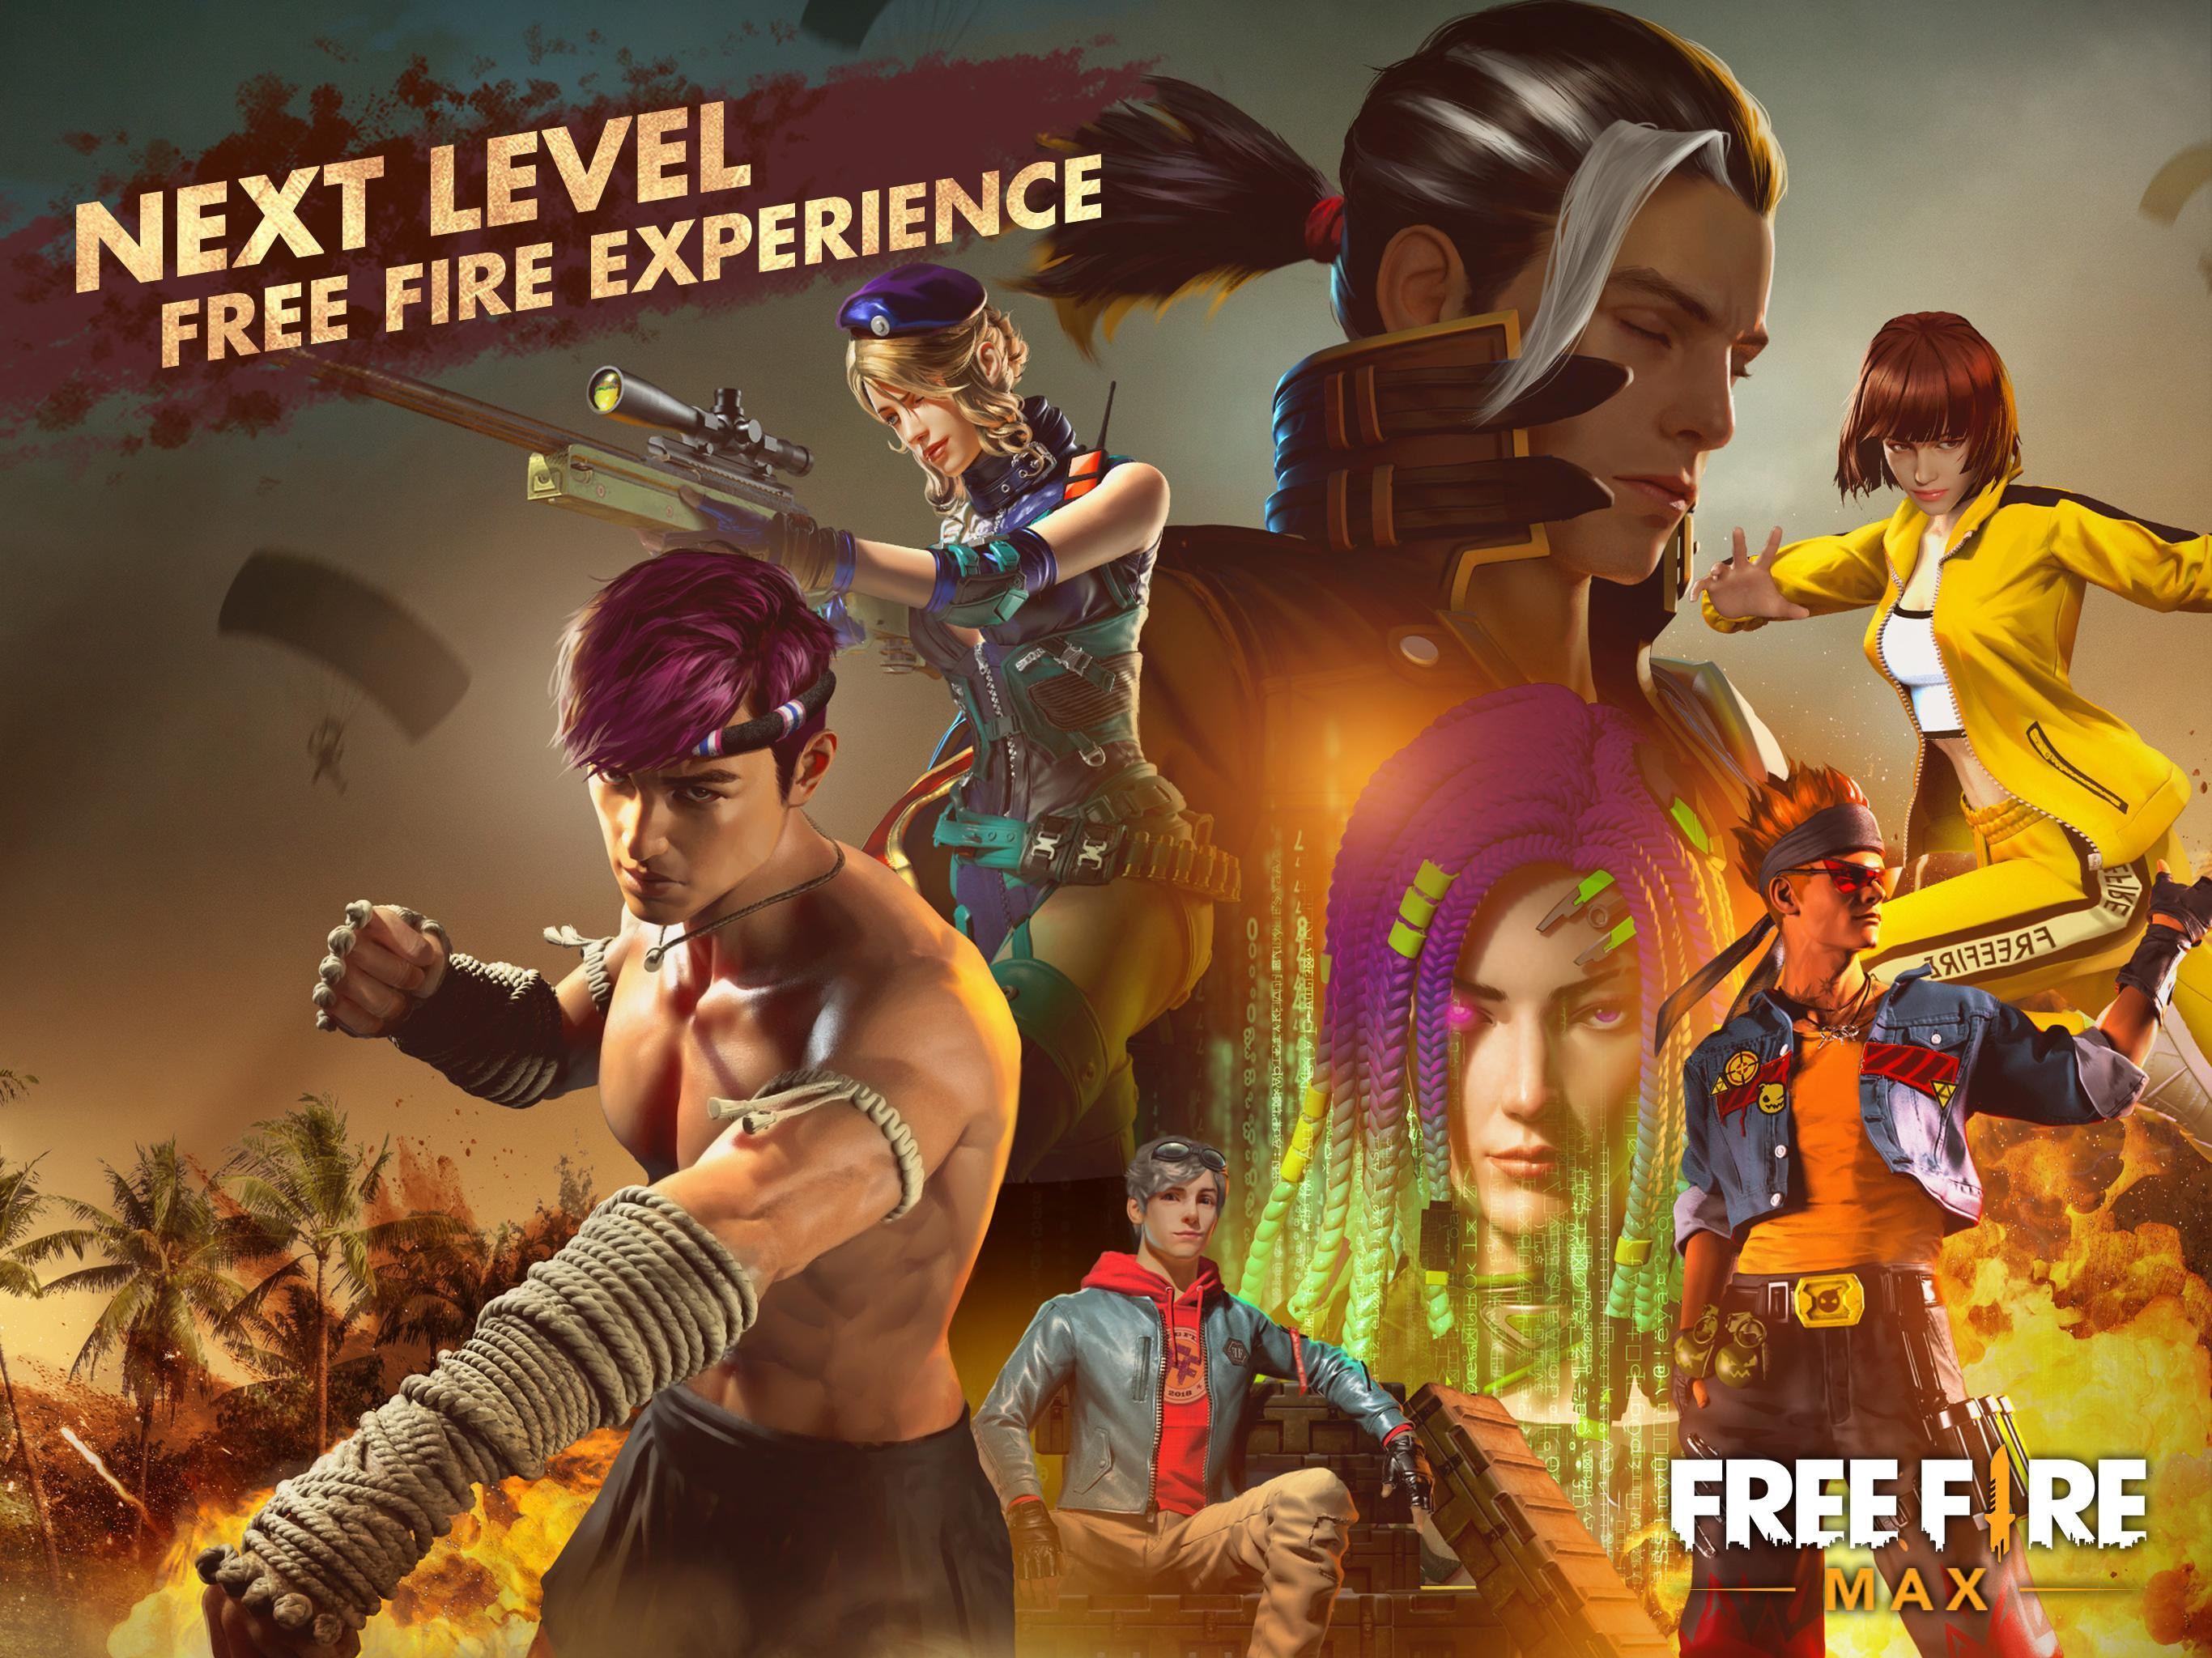 Free Fire Phots : Find images of free fire.